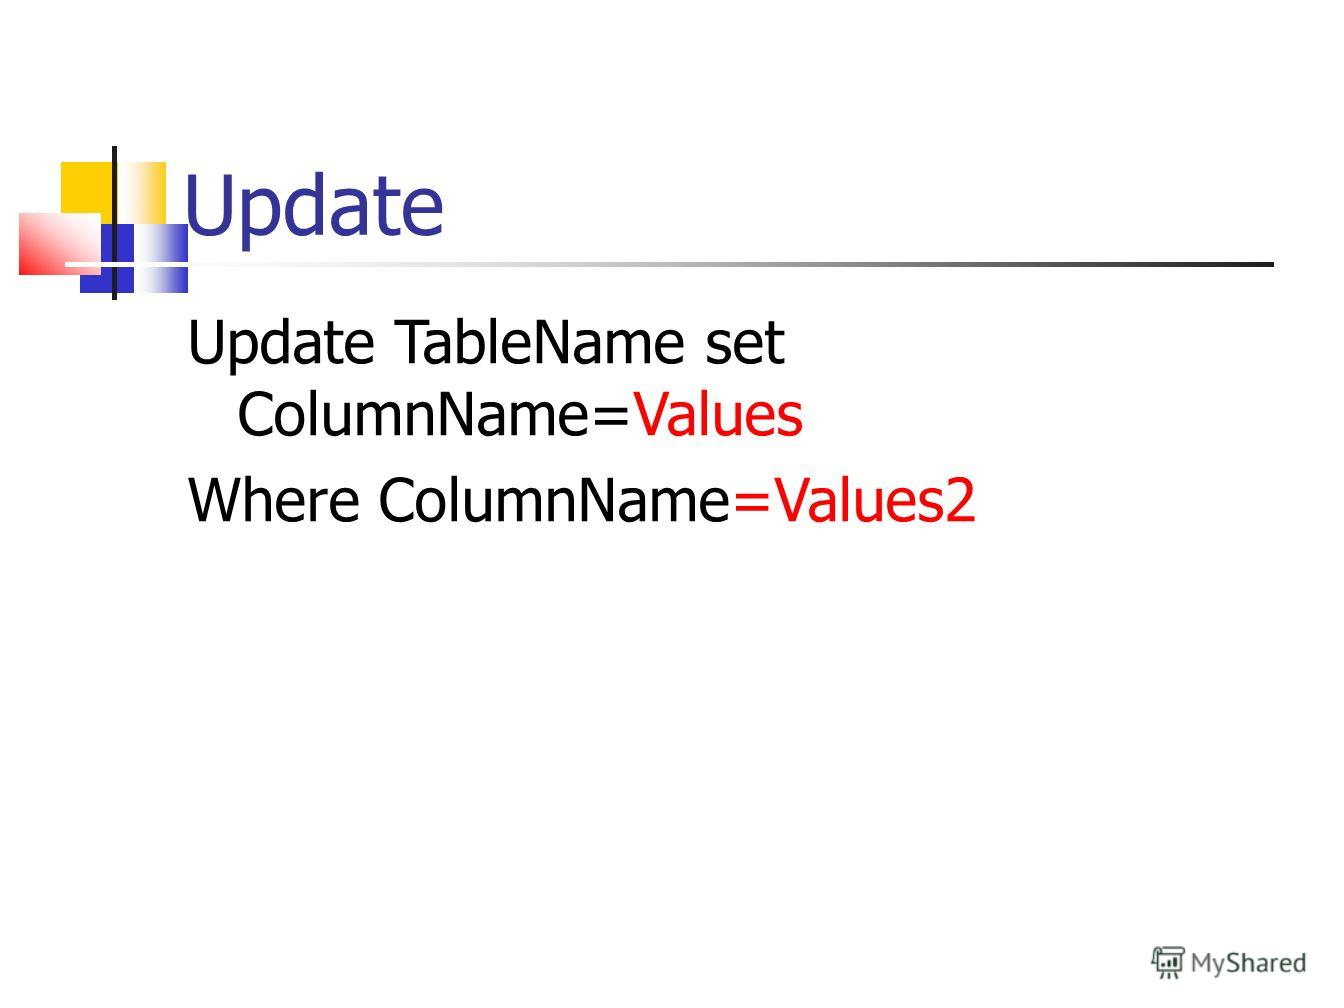 Update Update TableName set ColumnName=Values Where ColumnName=Values2